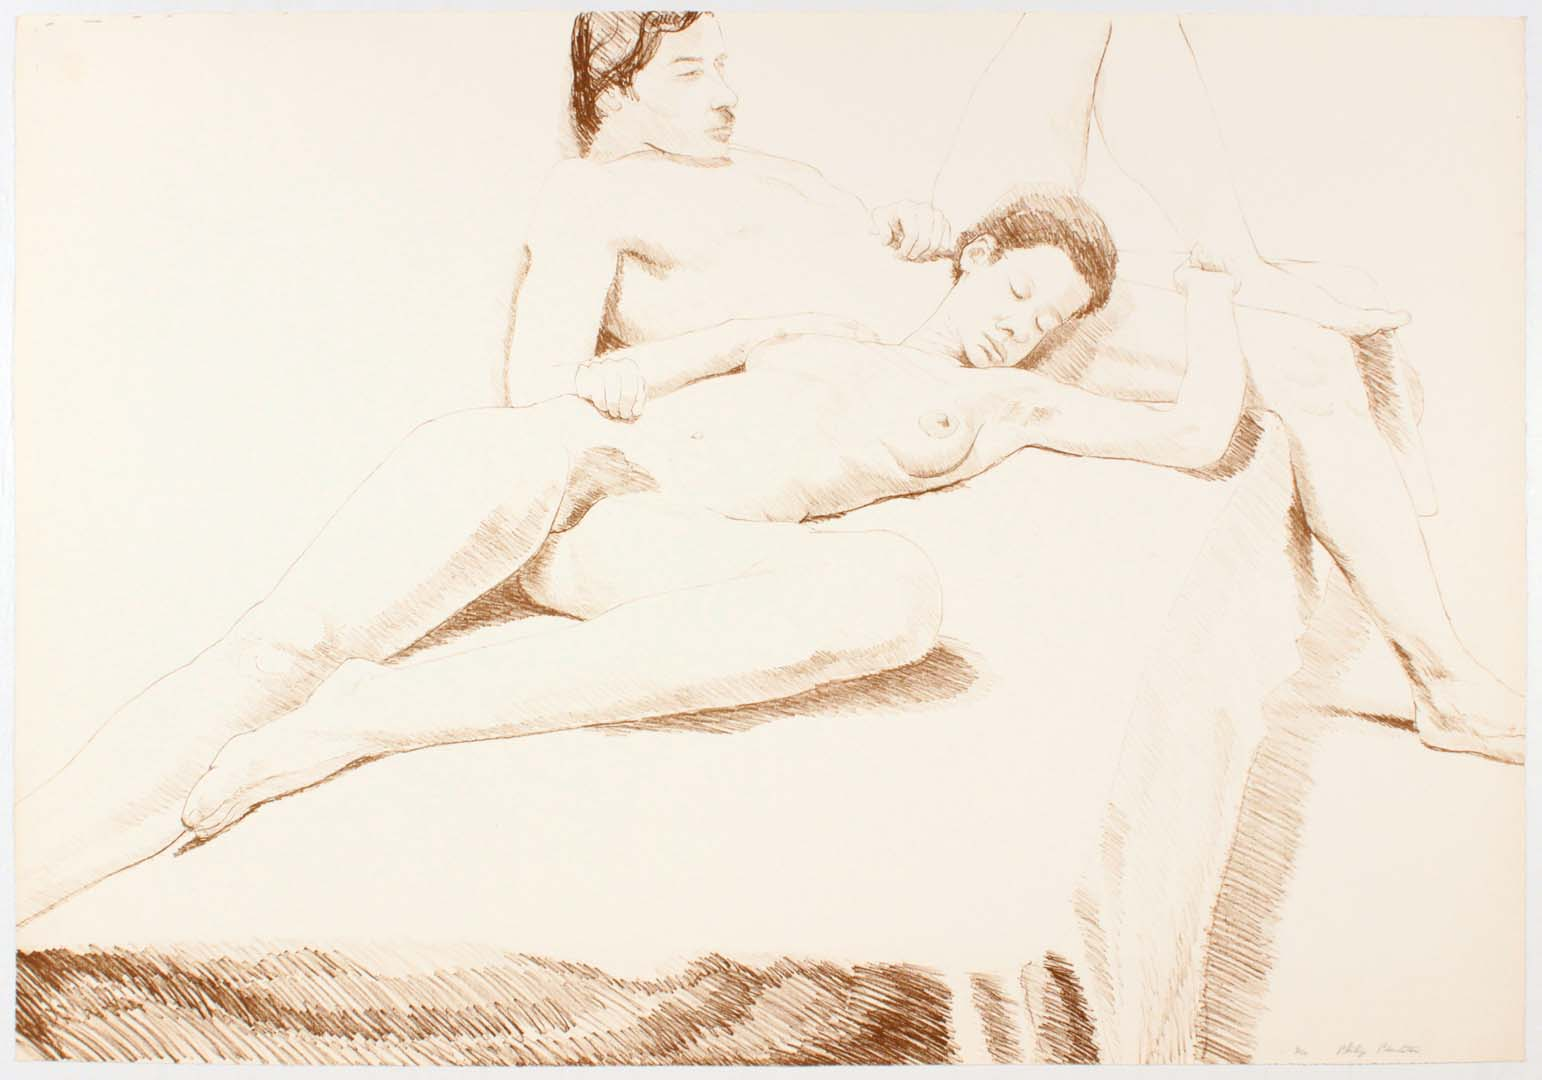 1968 Nude Couple Oversize Lithograph on Paper 27.0625 x 39.0625